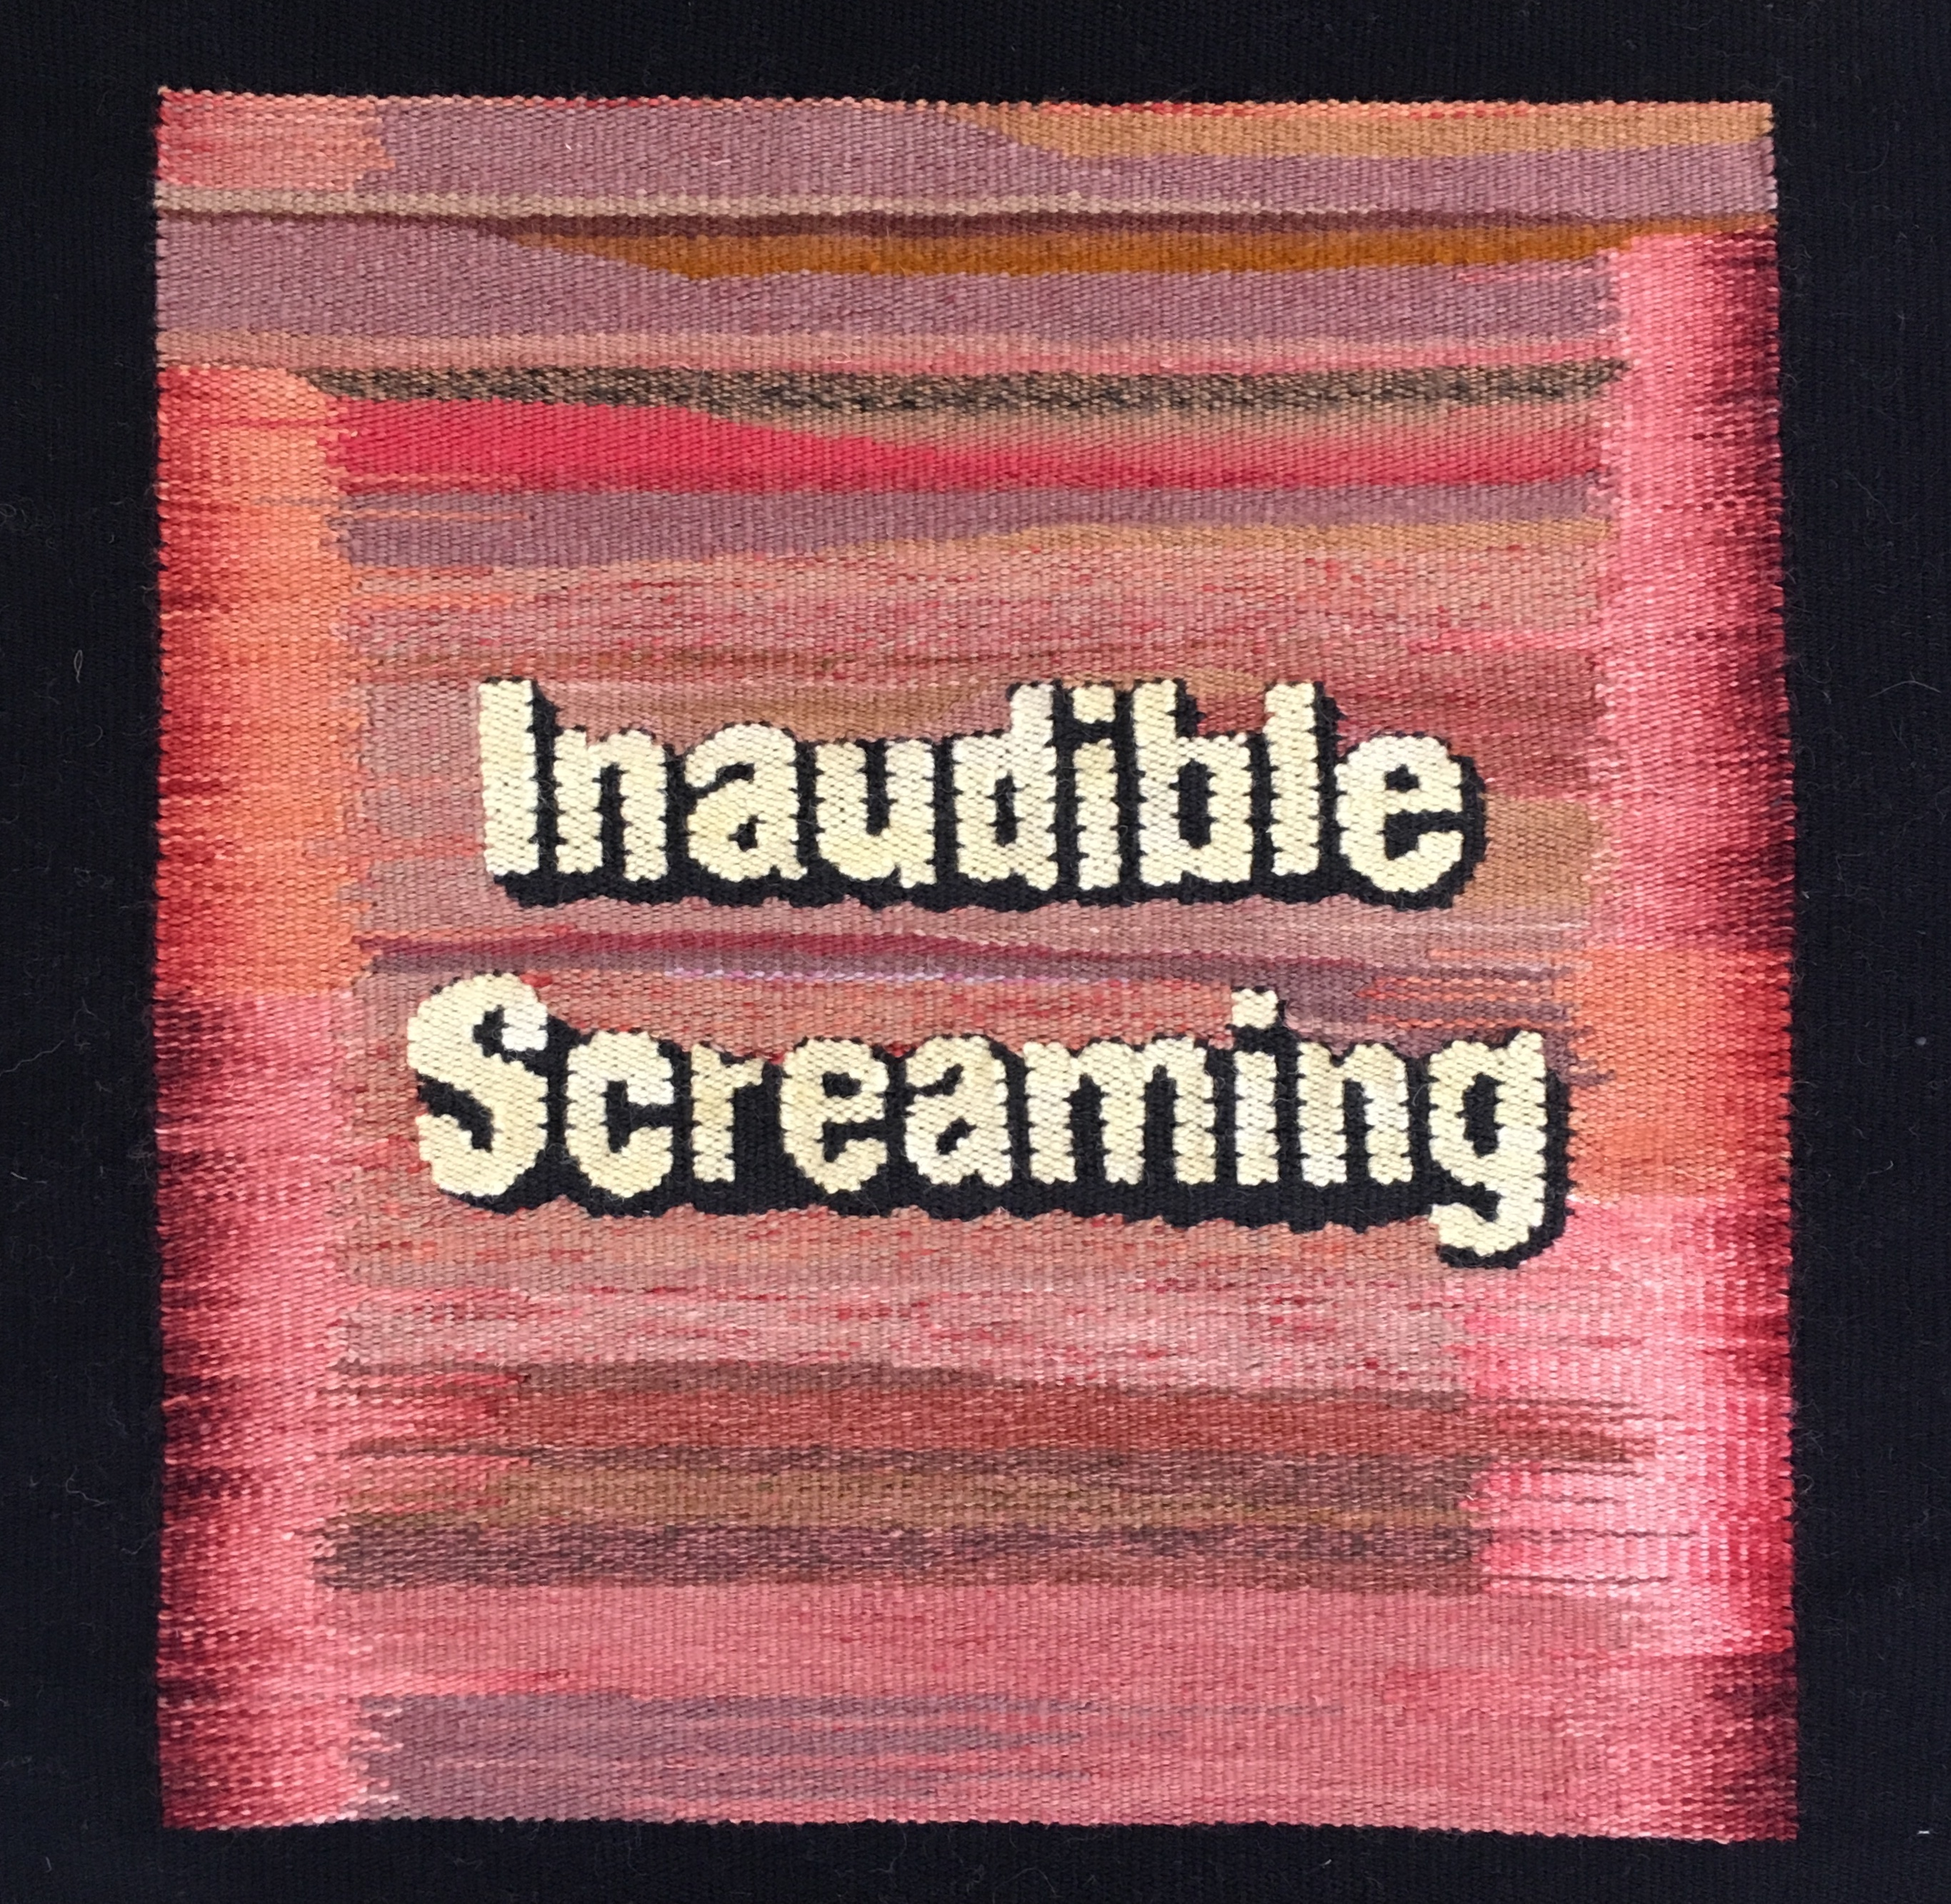 A square tapestry in hues of pink with the words 'Inaudible Screaming' across it